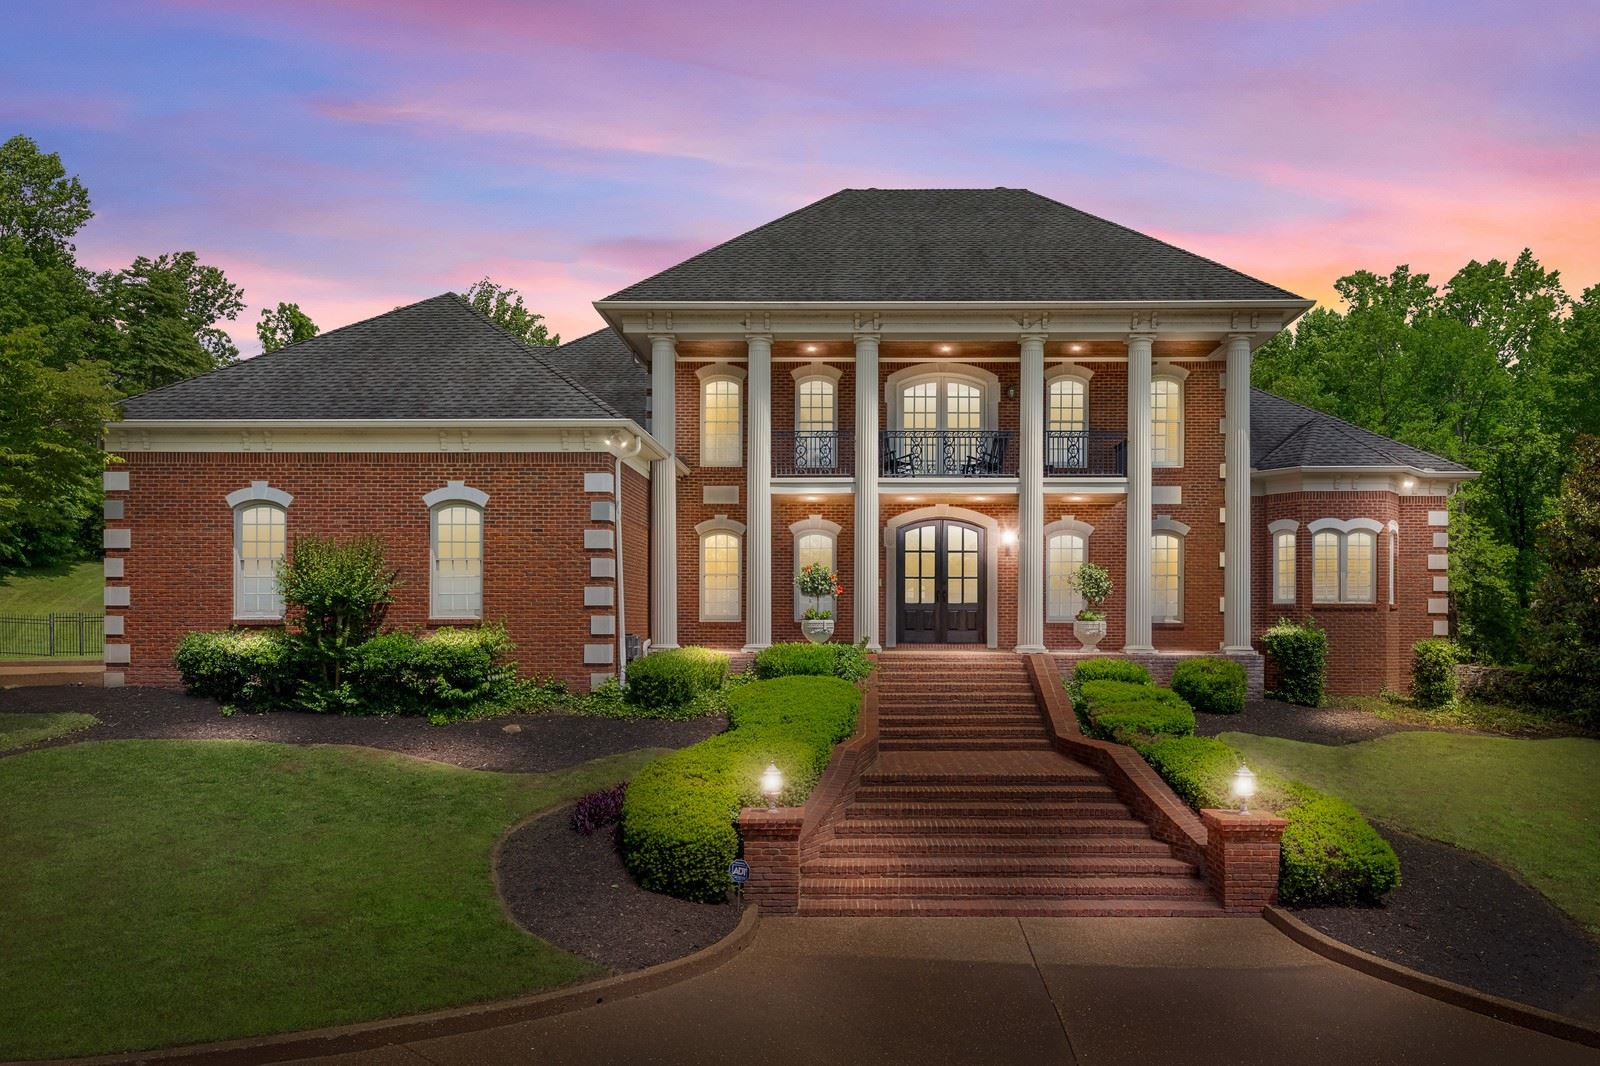 Photo of 9636 Stanfield RD, Brentwood, TN 37027 (MLS # 2134656)